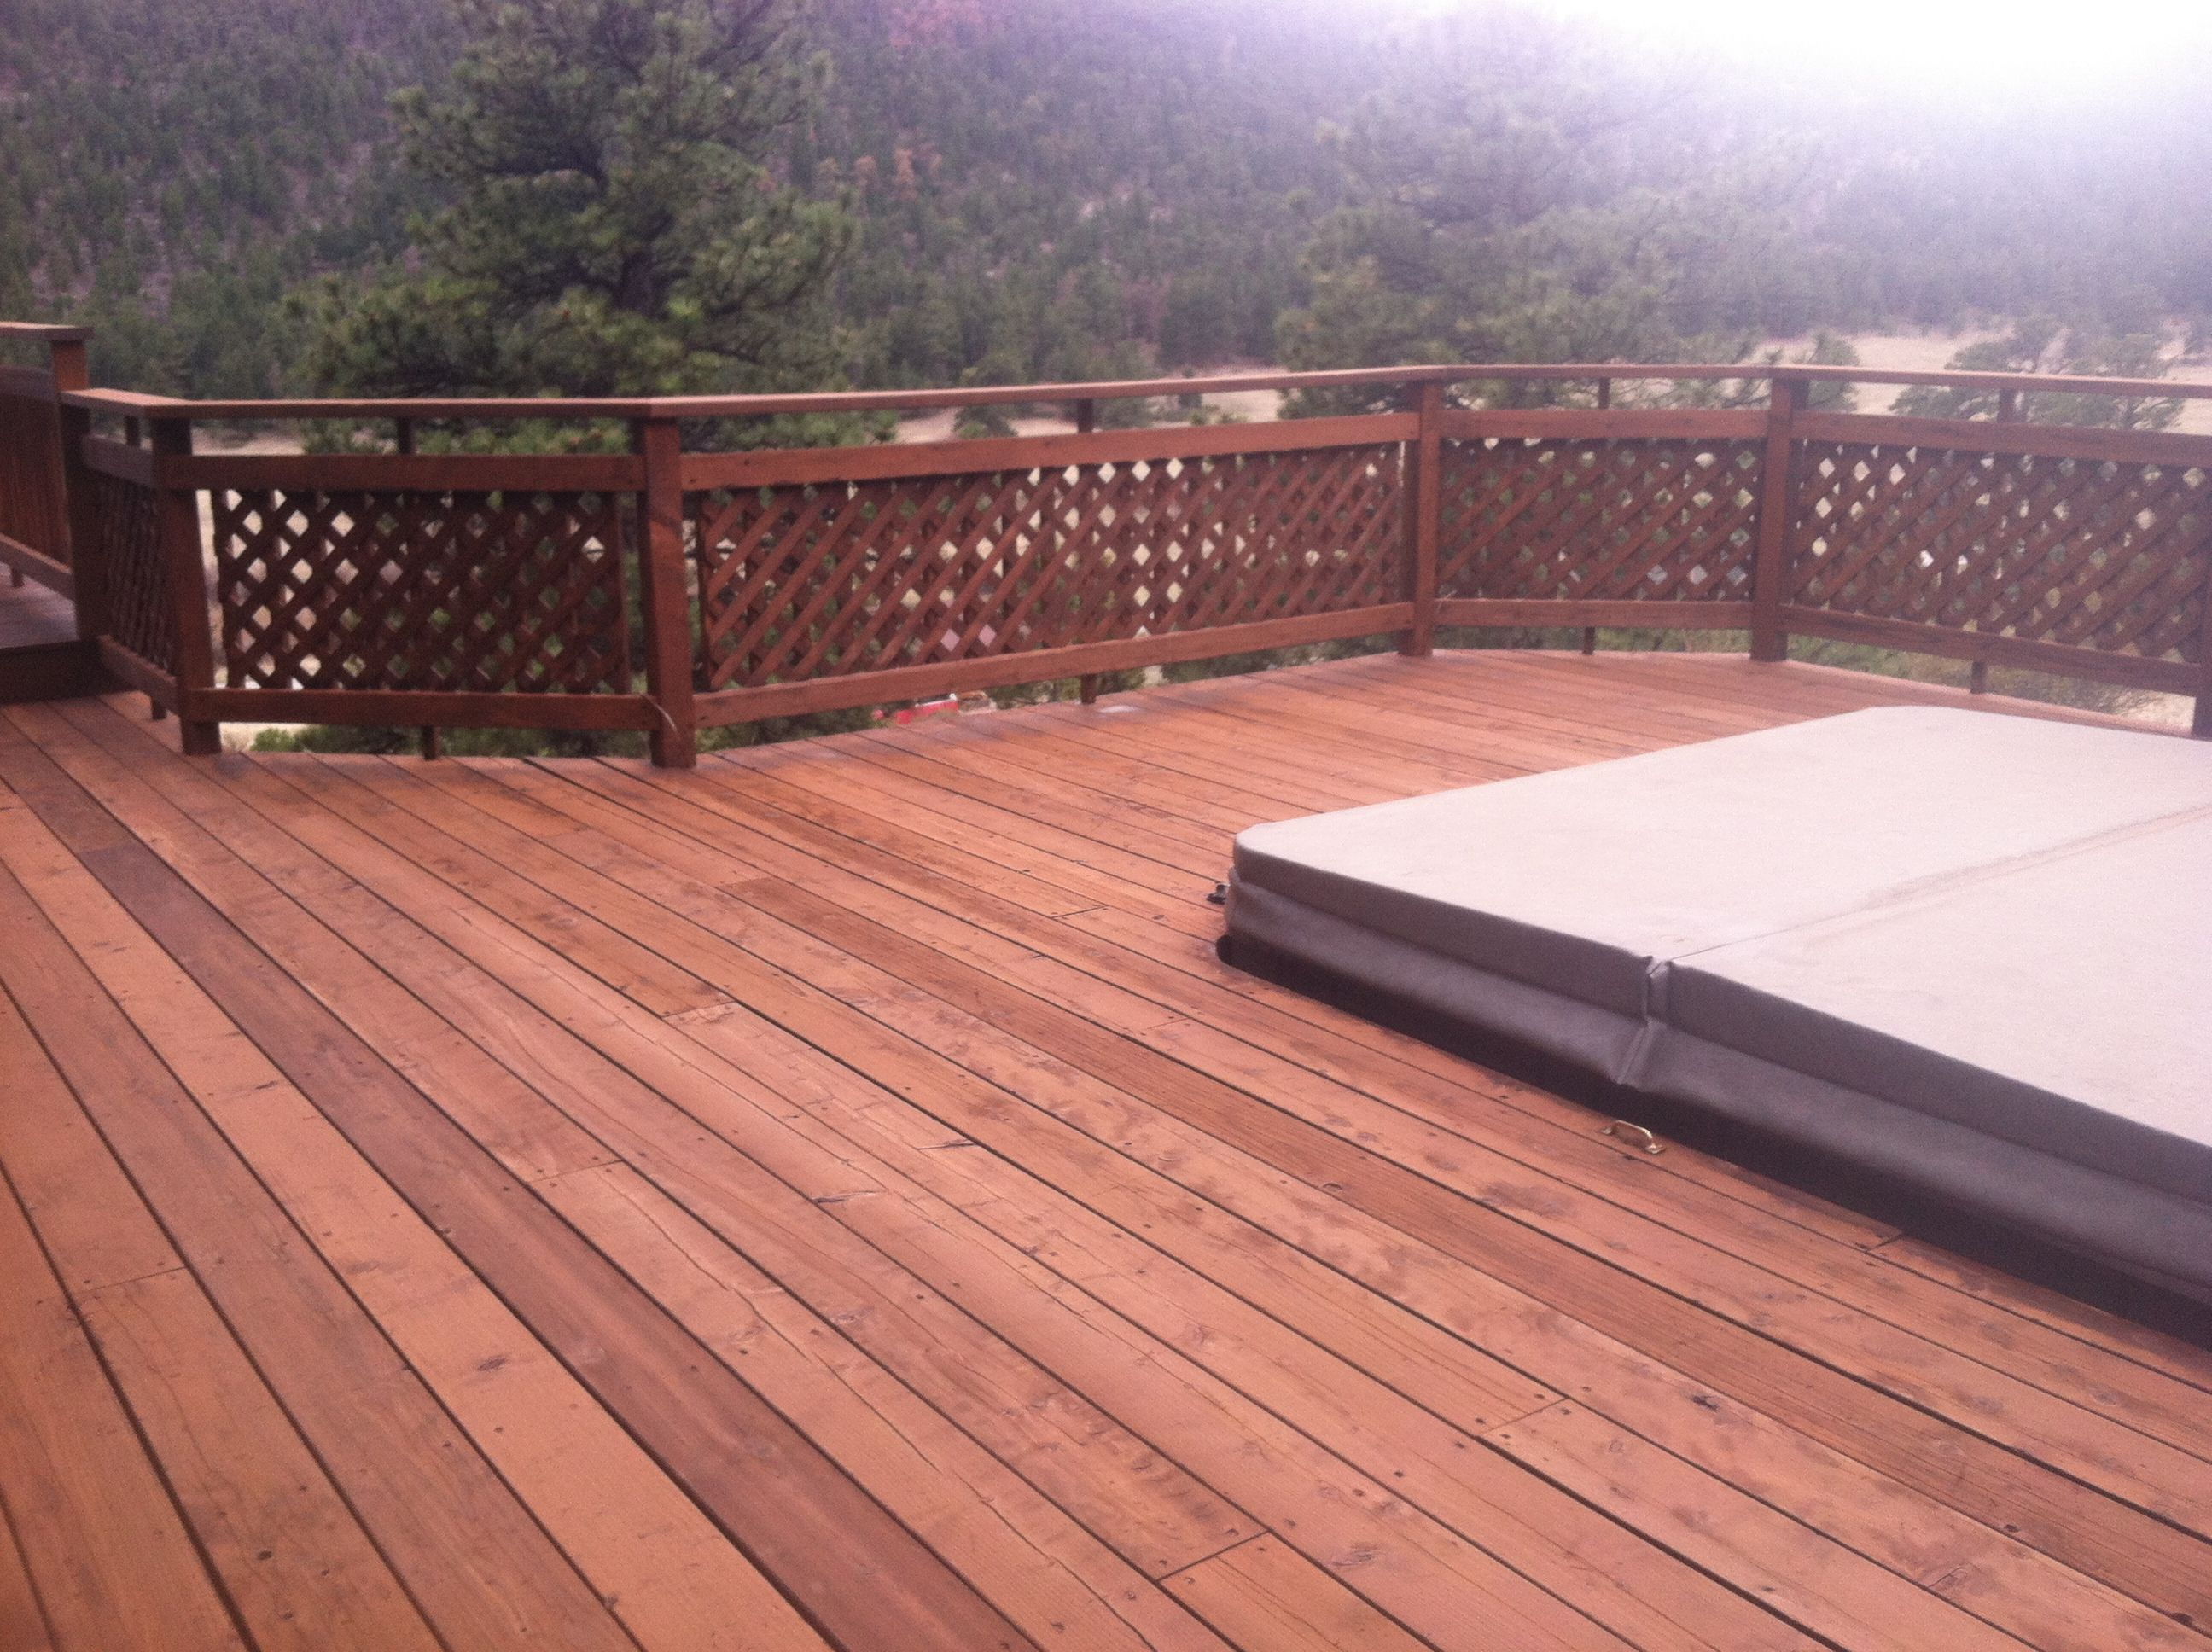 Cabot Deck Stain In Semi Solid New Redwood Staining Deck Deck Stain Colors Redwood Decking